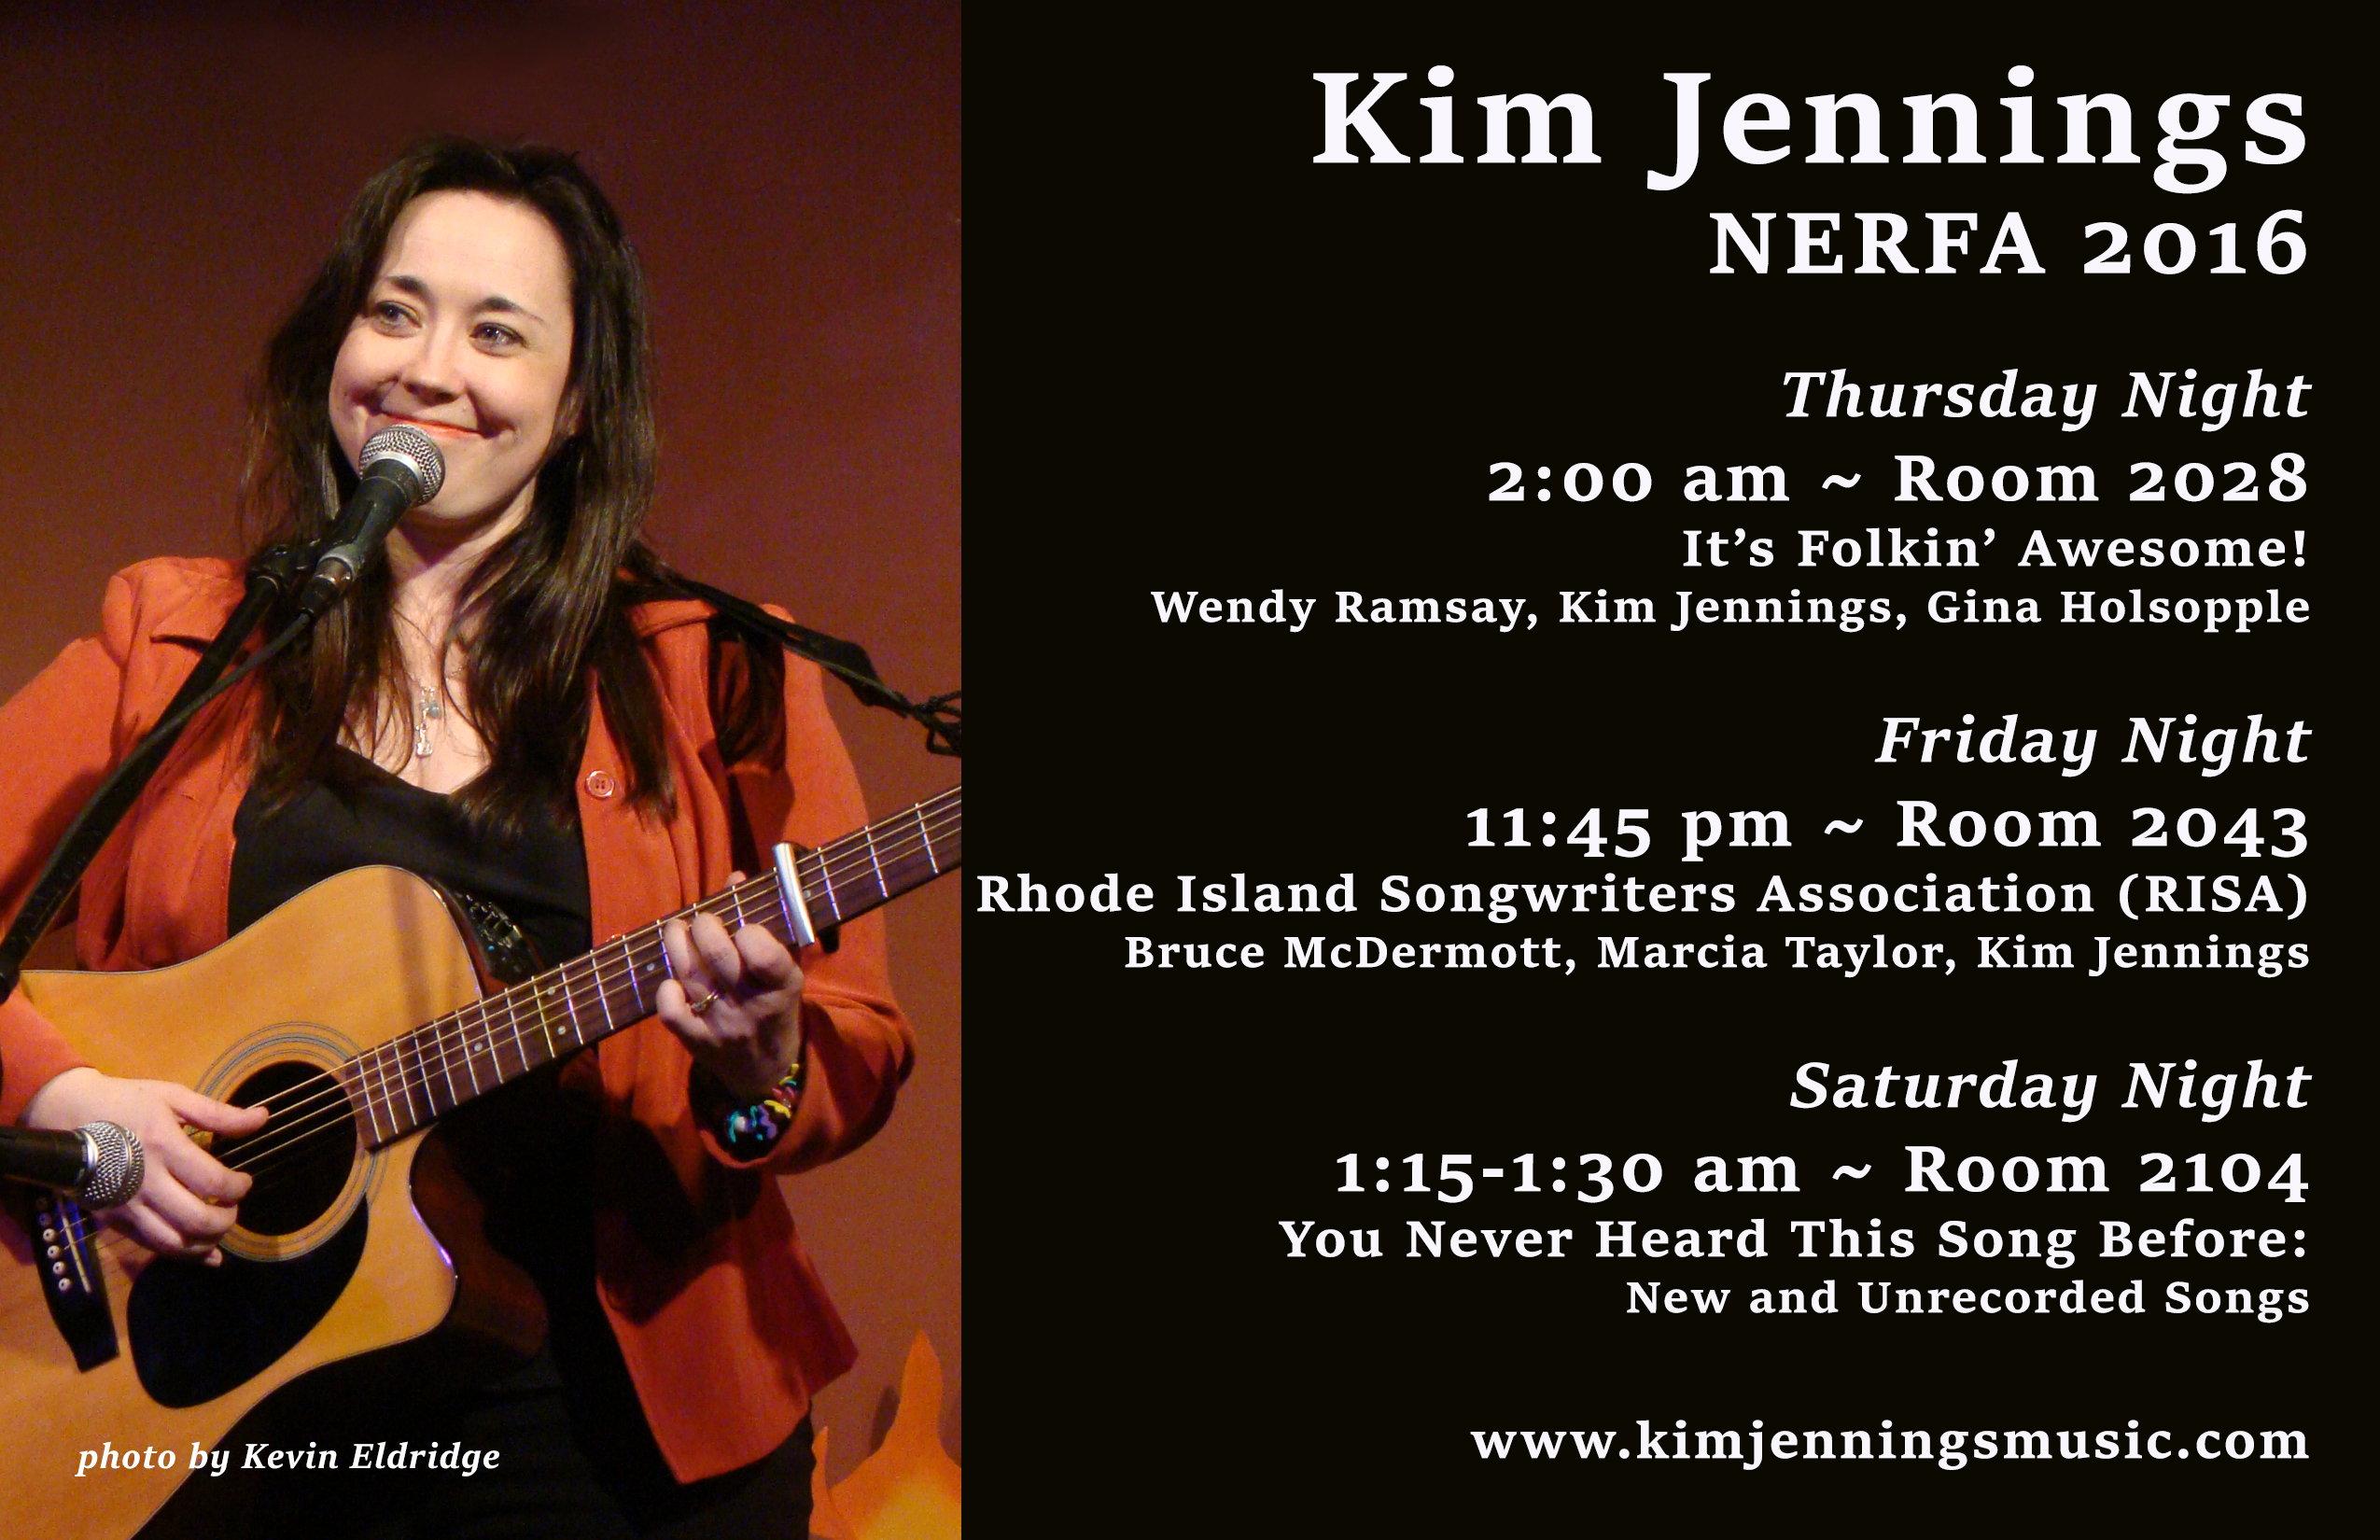 Kim Jennings NERFA 2016 Late Night Schedule